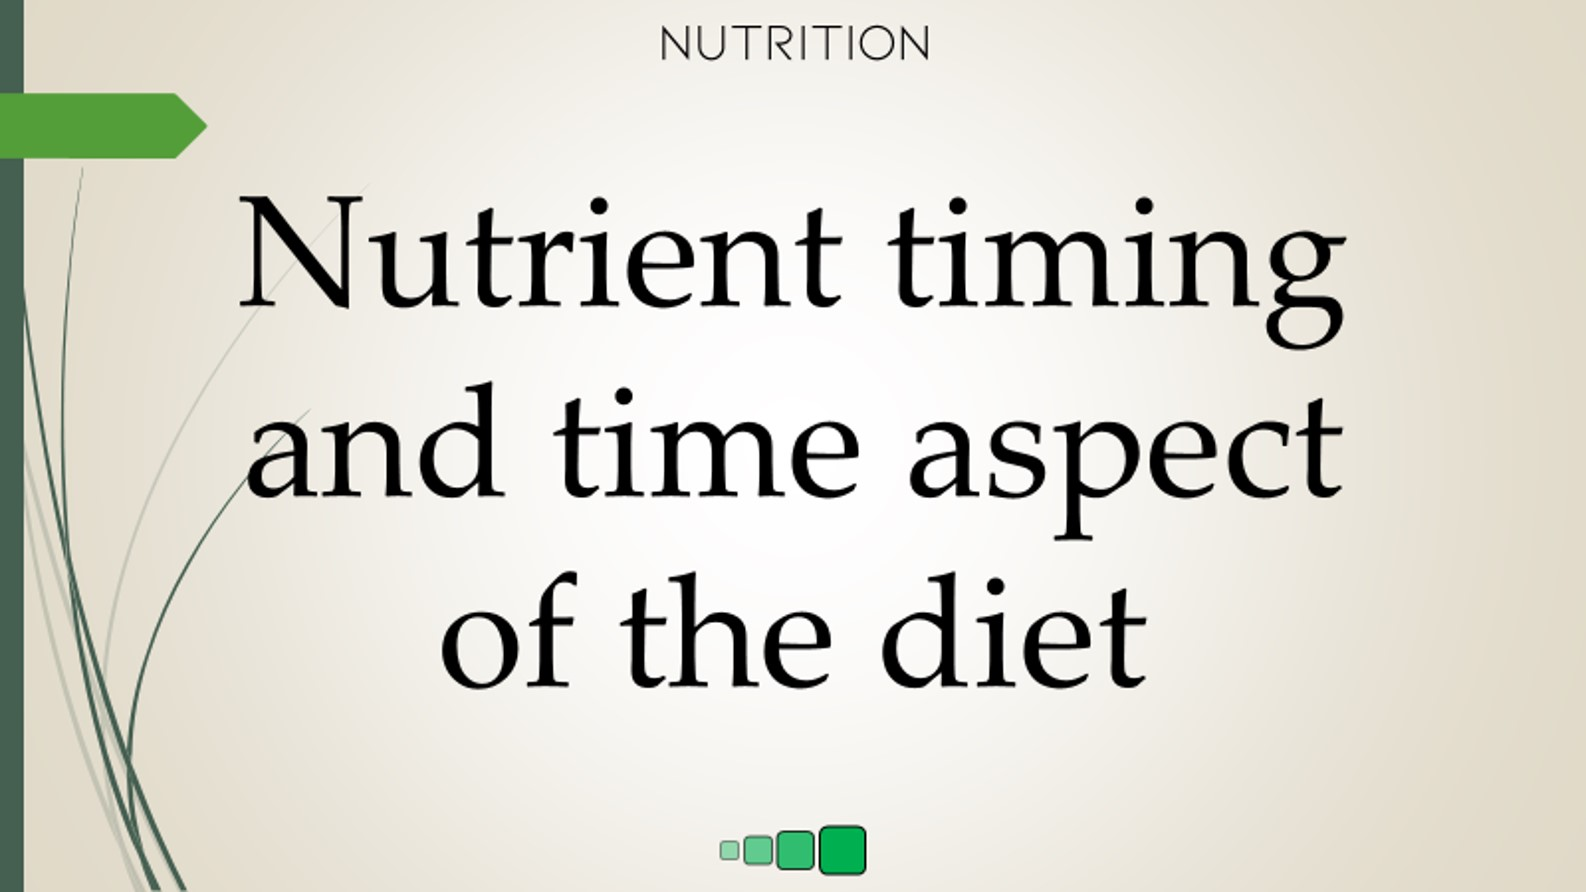 nutrient timing and time aspect of the diet